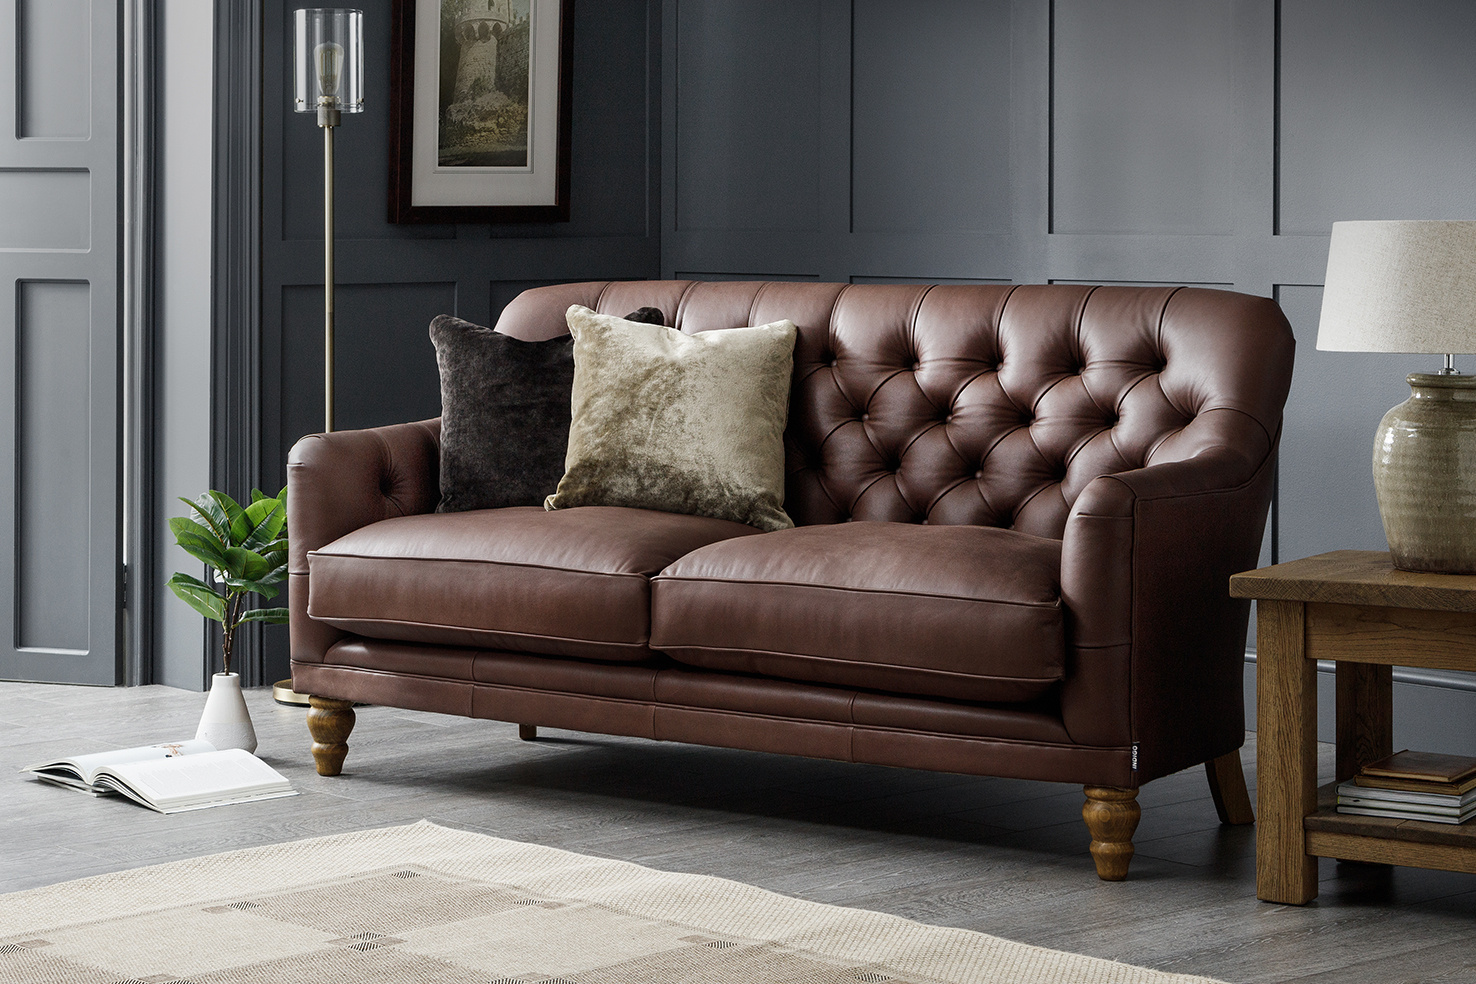 How to fix a rip on a leather sofa